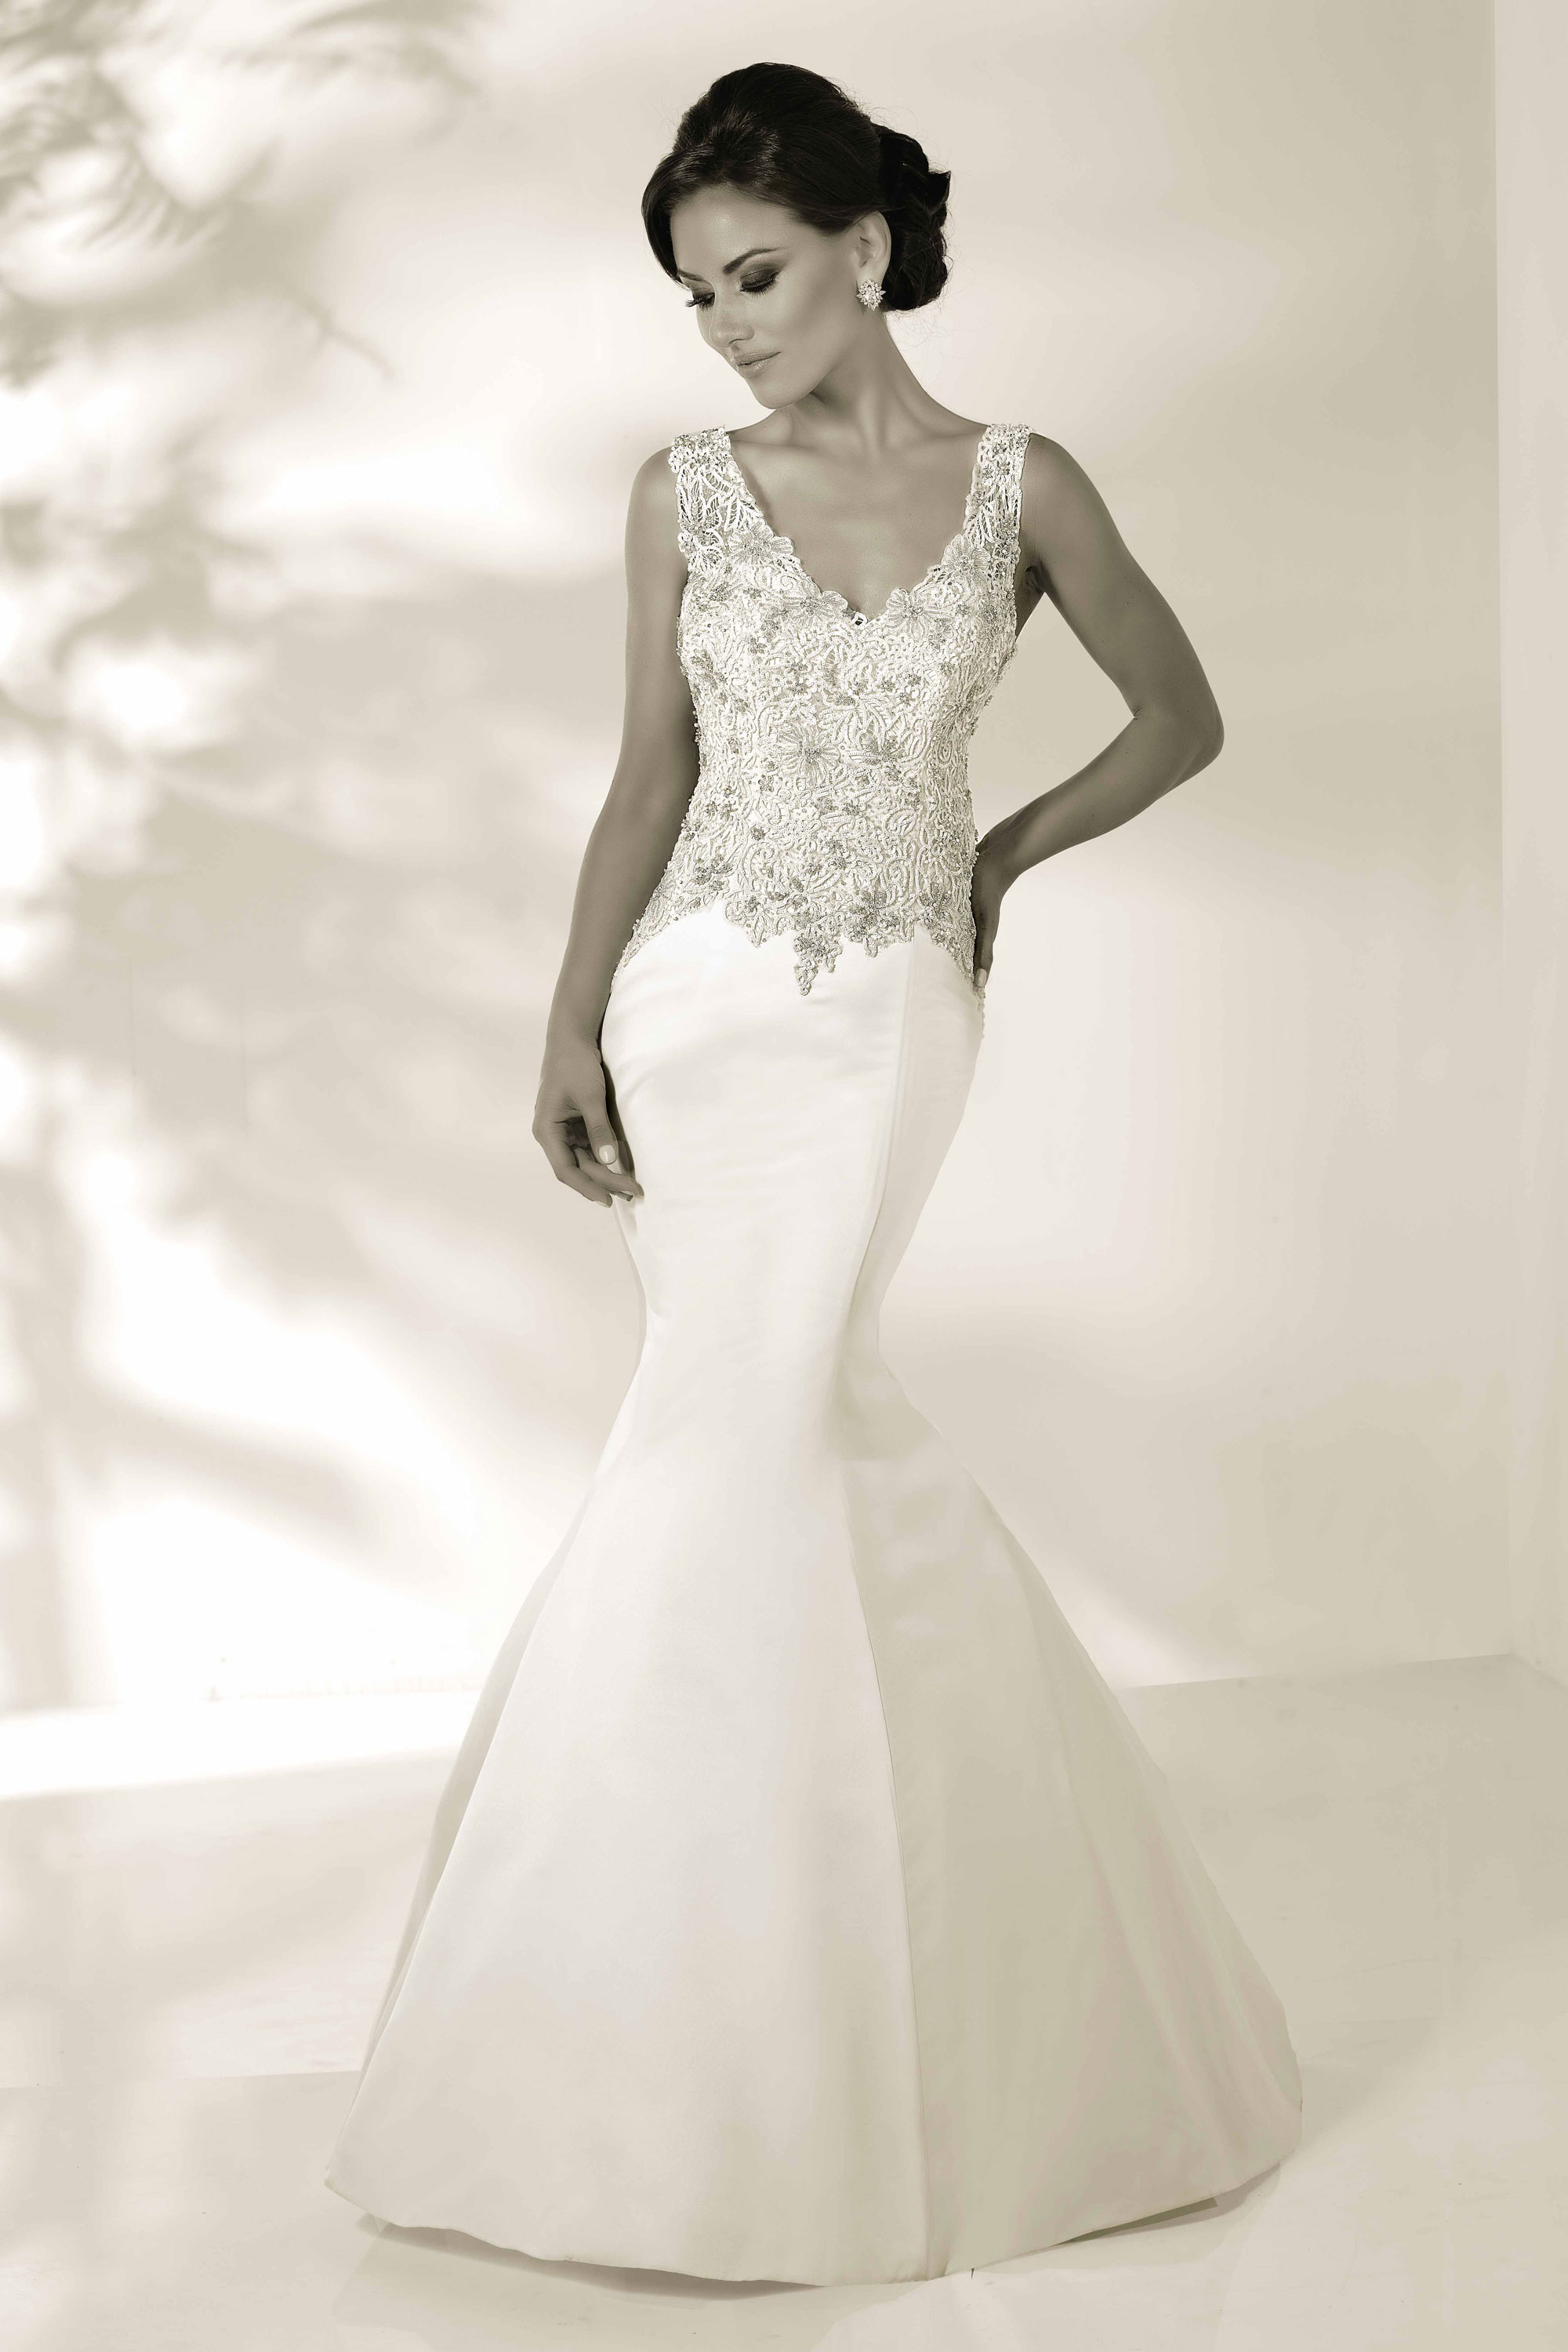 cristiano-lucci-wedding-dresses-15-01052014